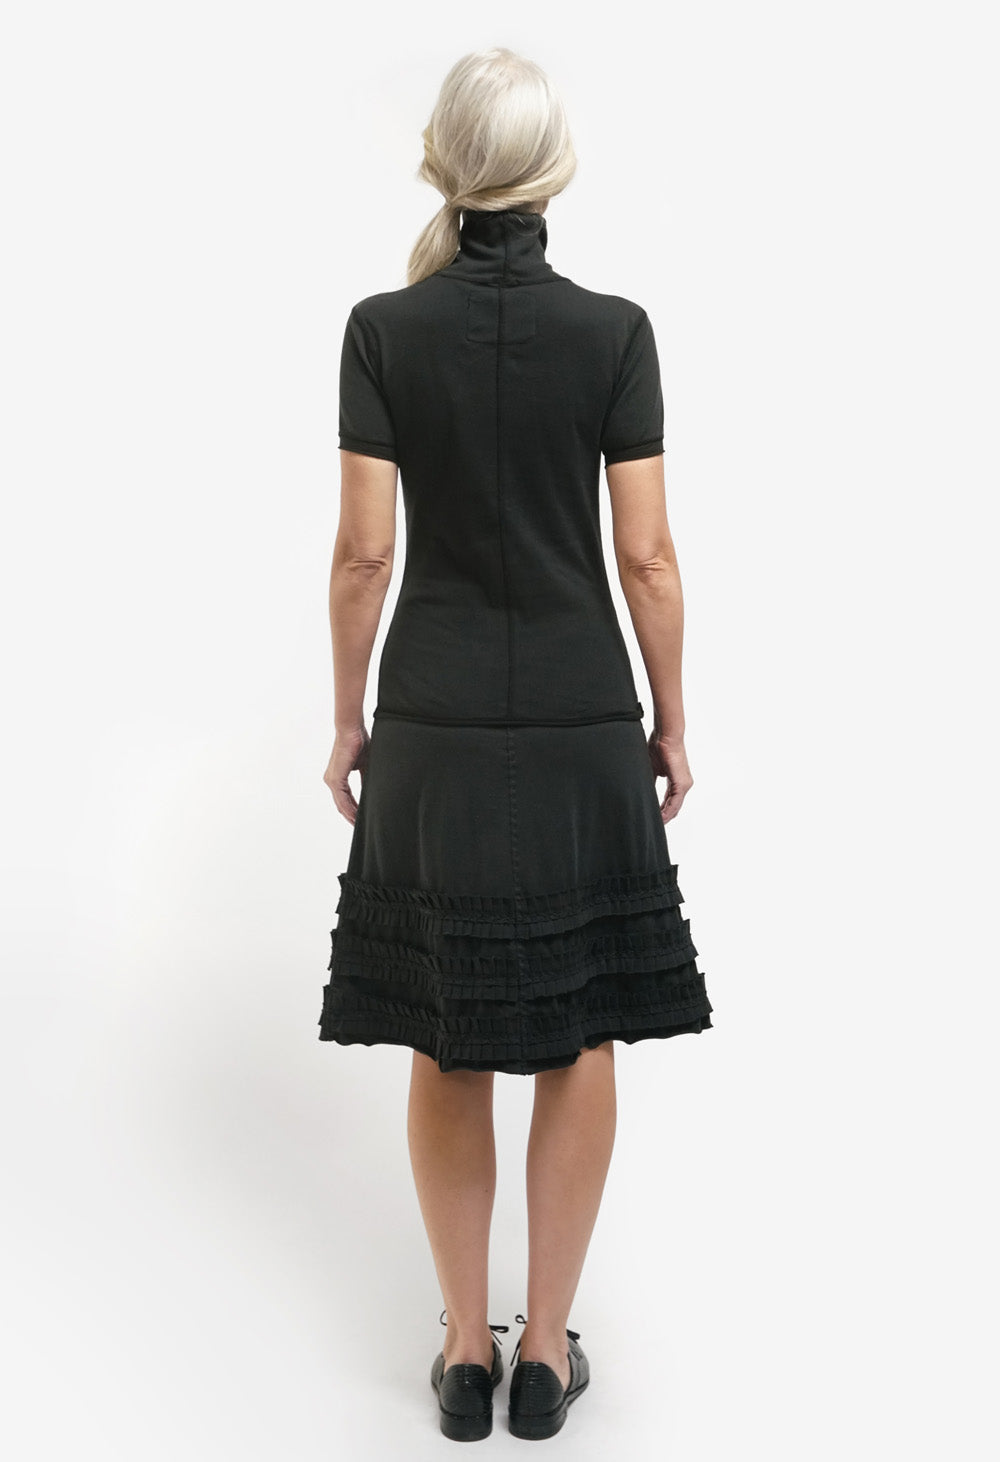 the school of making organic cotton black ruffle skirt kit styled on model